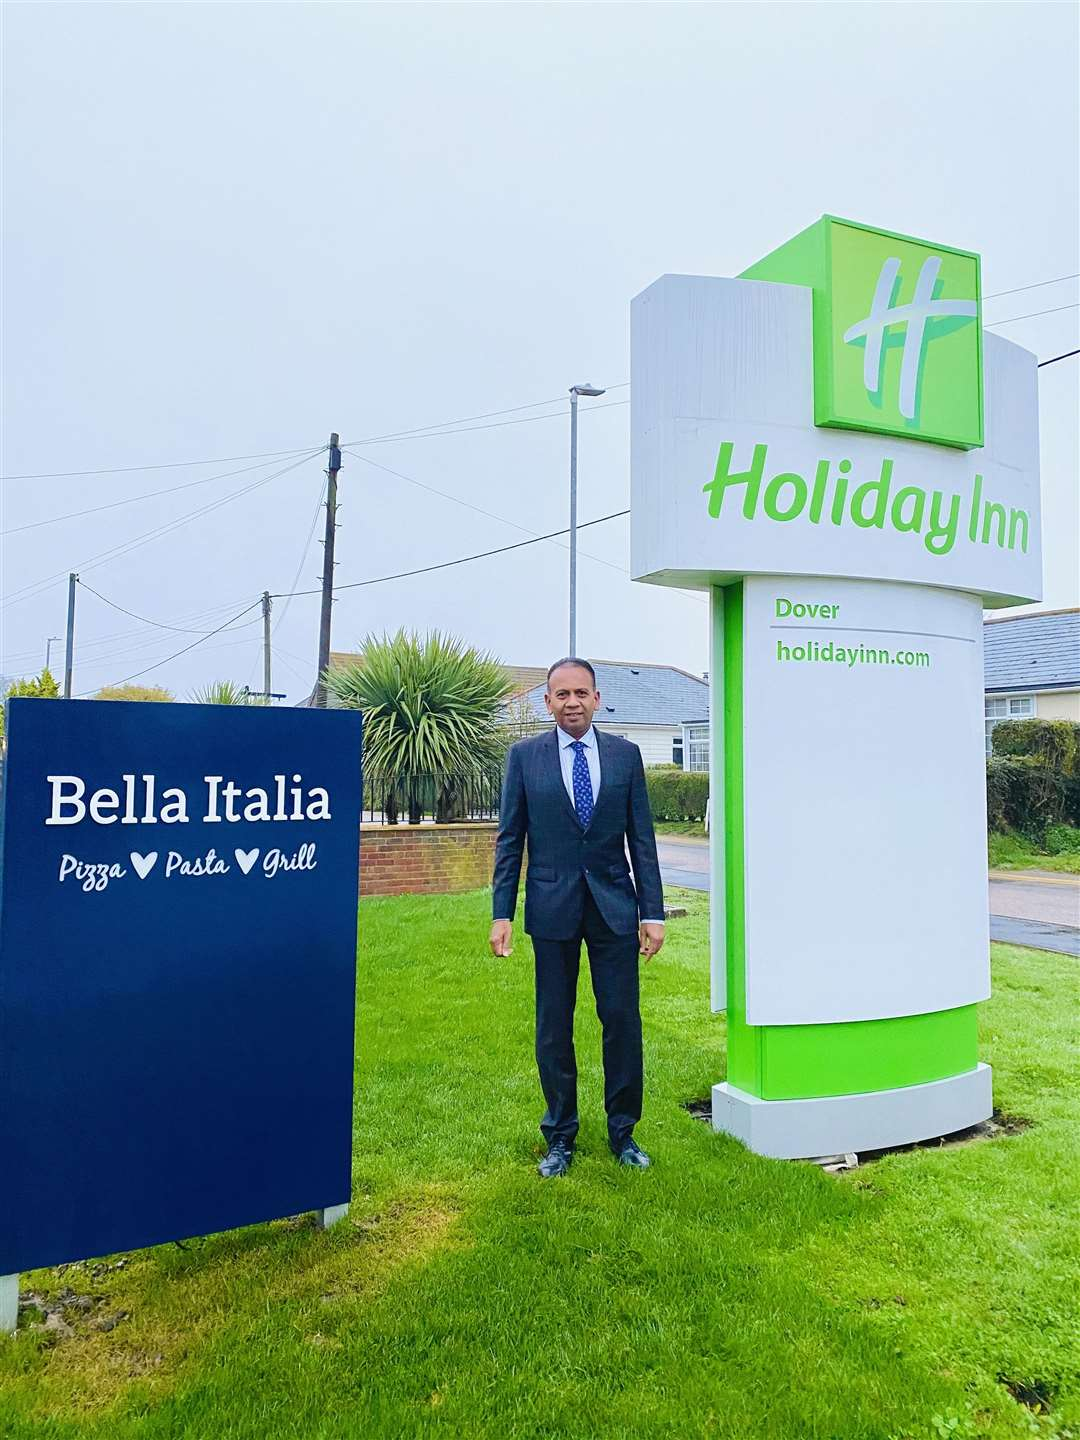 Kanagaratnam Rajamenon of Dover Leaf Hotel has invested in the hotel by rebranding it Holiday Inn